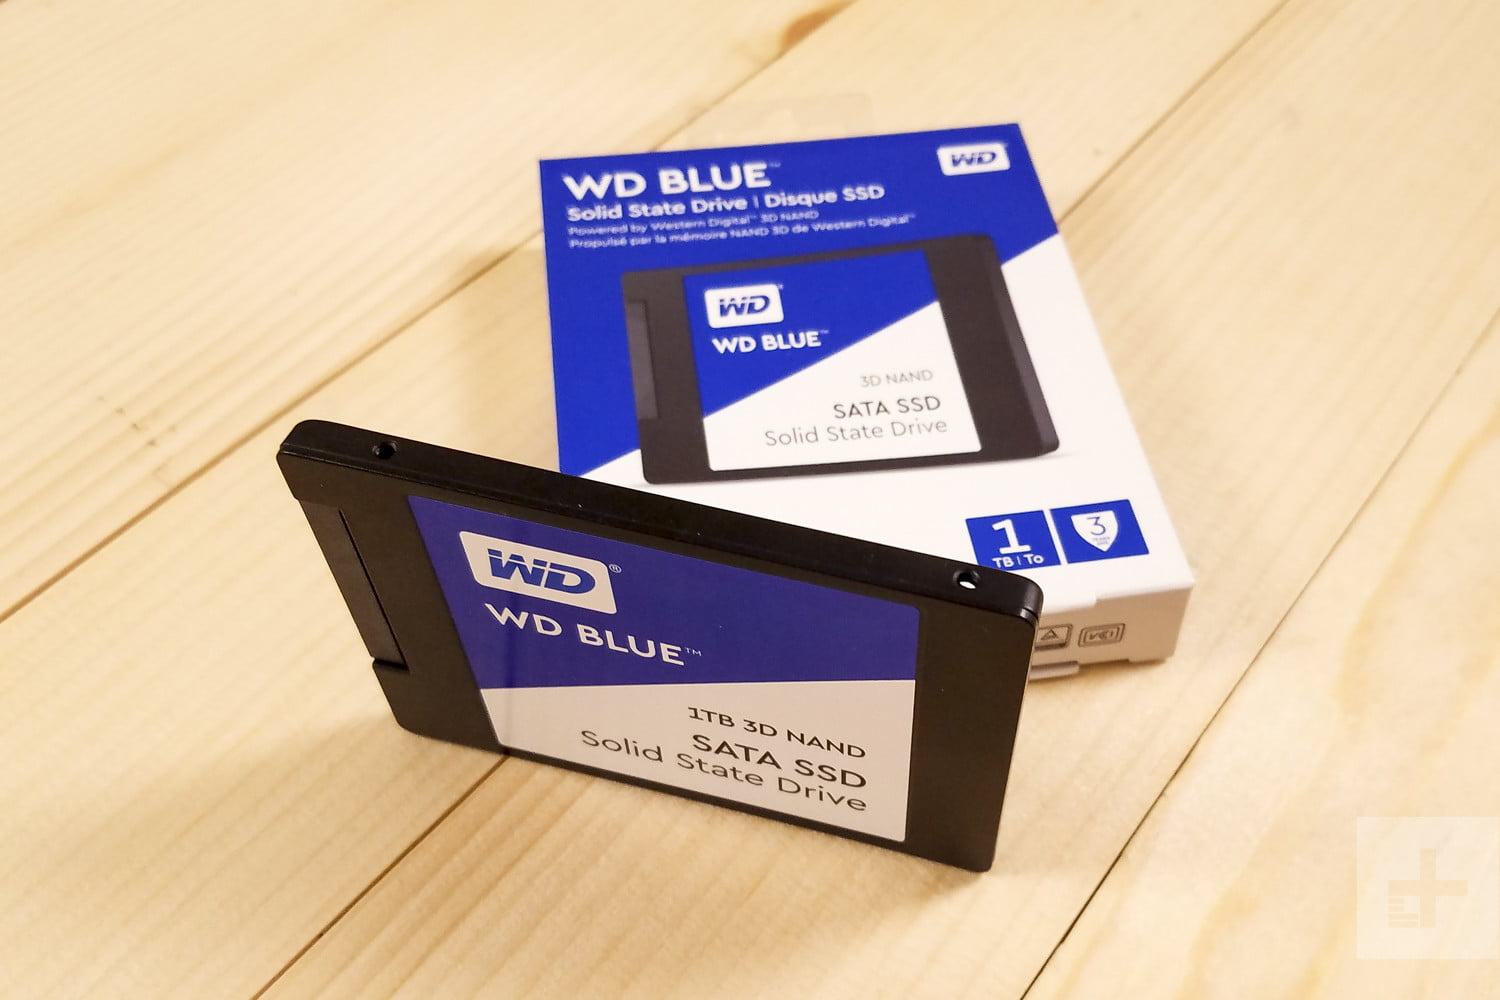 Western Digital Blue 3D NAND SATA SSD sitting next to the box it comes in